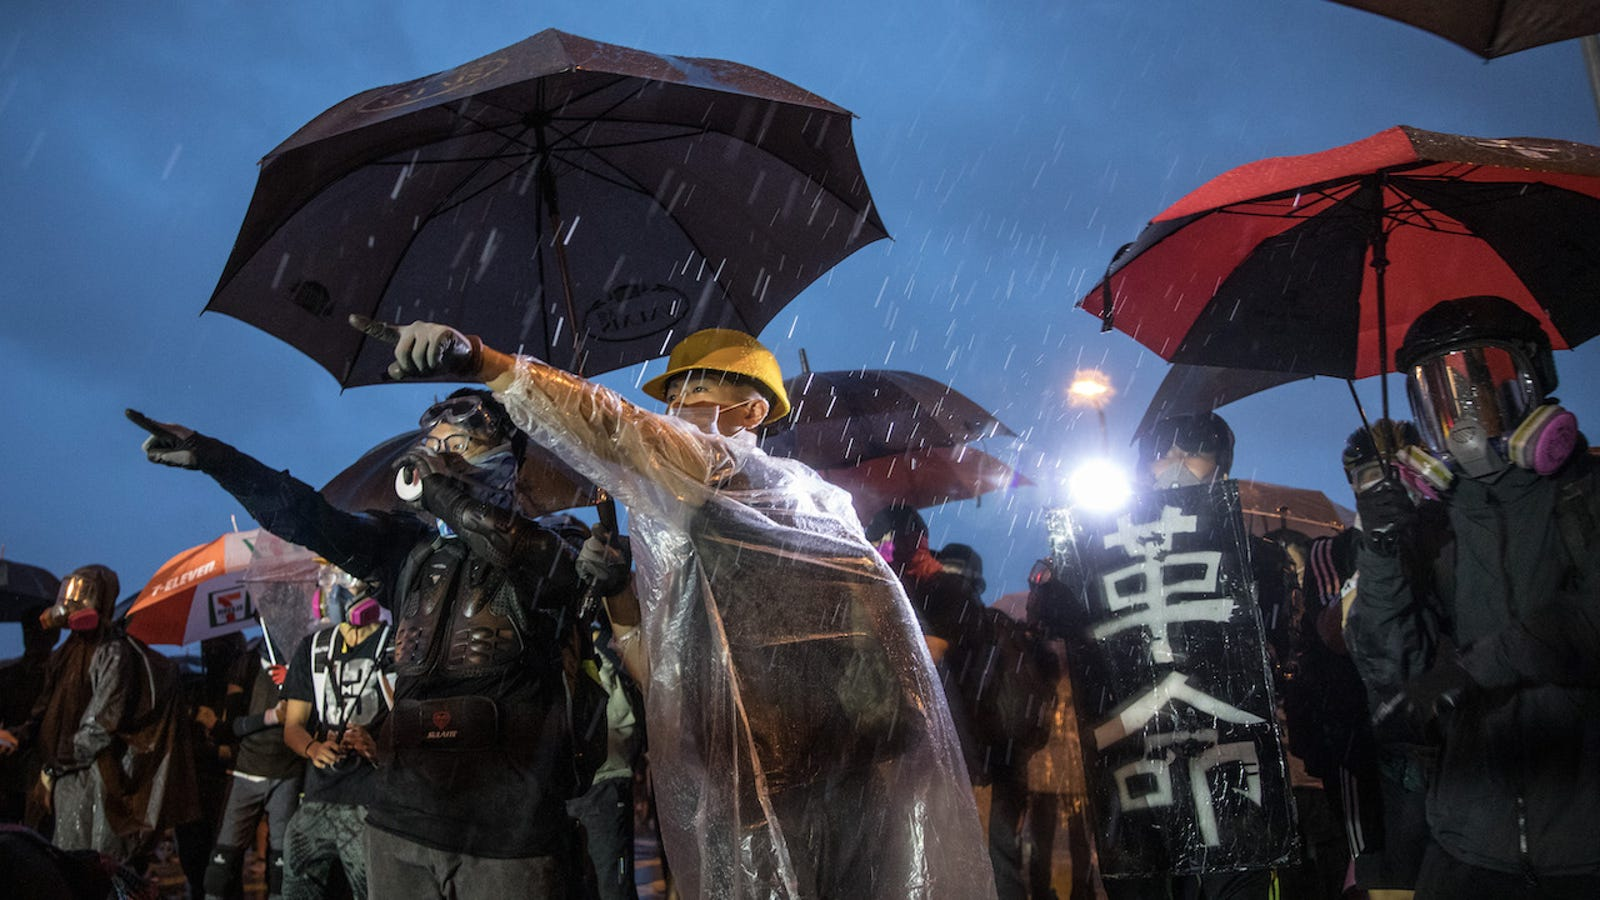 Top Website For Organizing Hong Kong Protests Hit With DDoS Attack